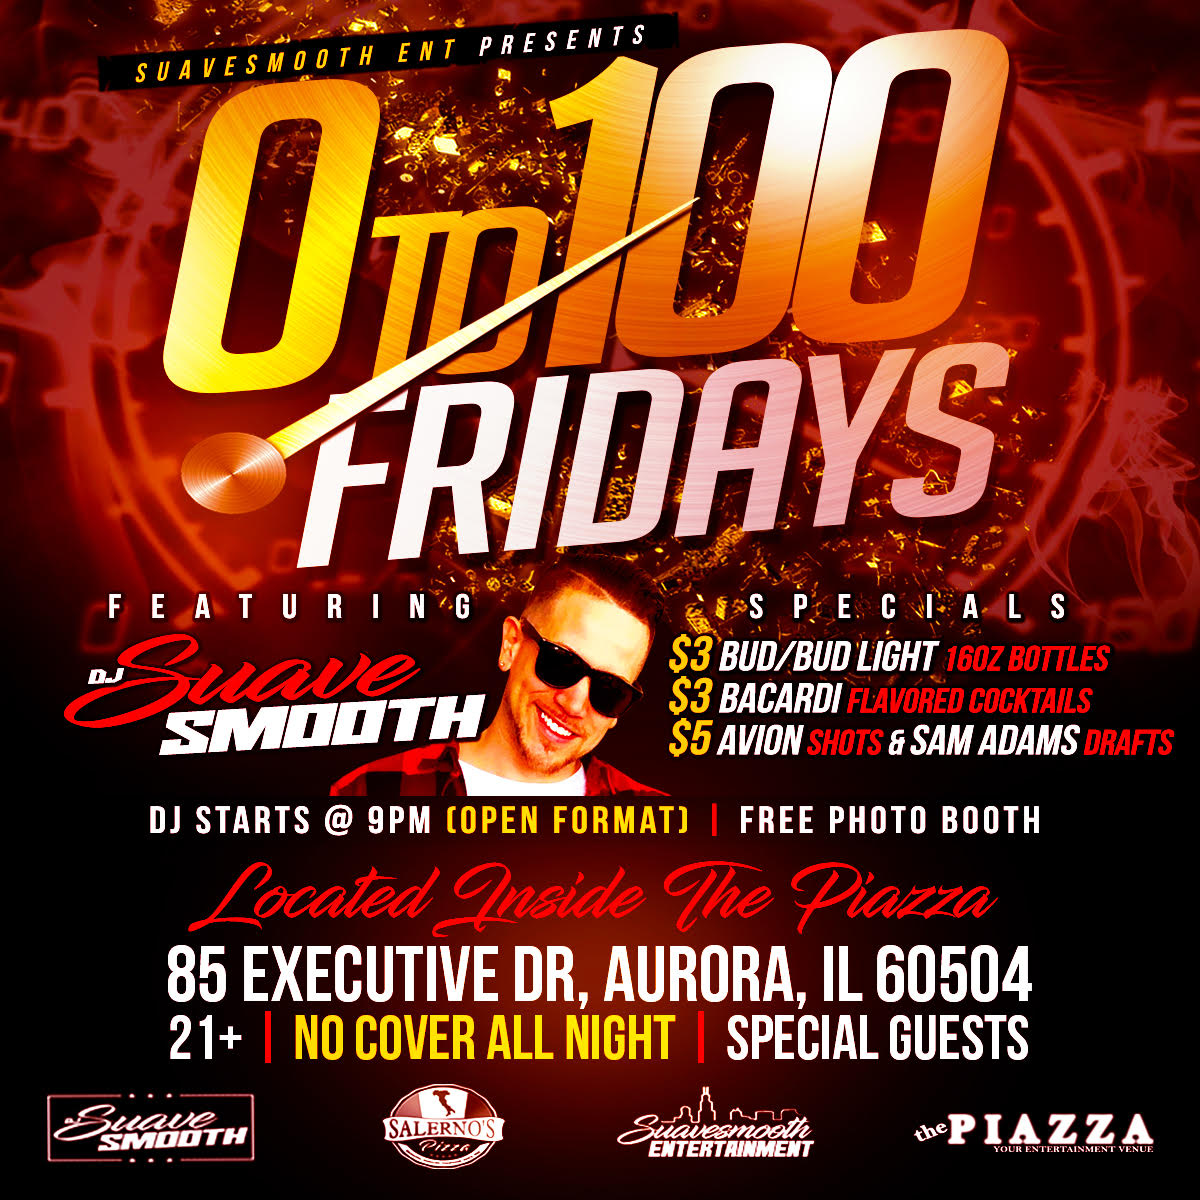 0 to 100 Fridays at The Piazza with DJ Suave SMOOTH @ the PIAZZA - Aurora